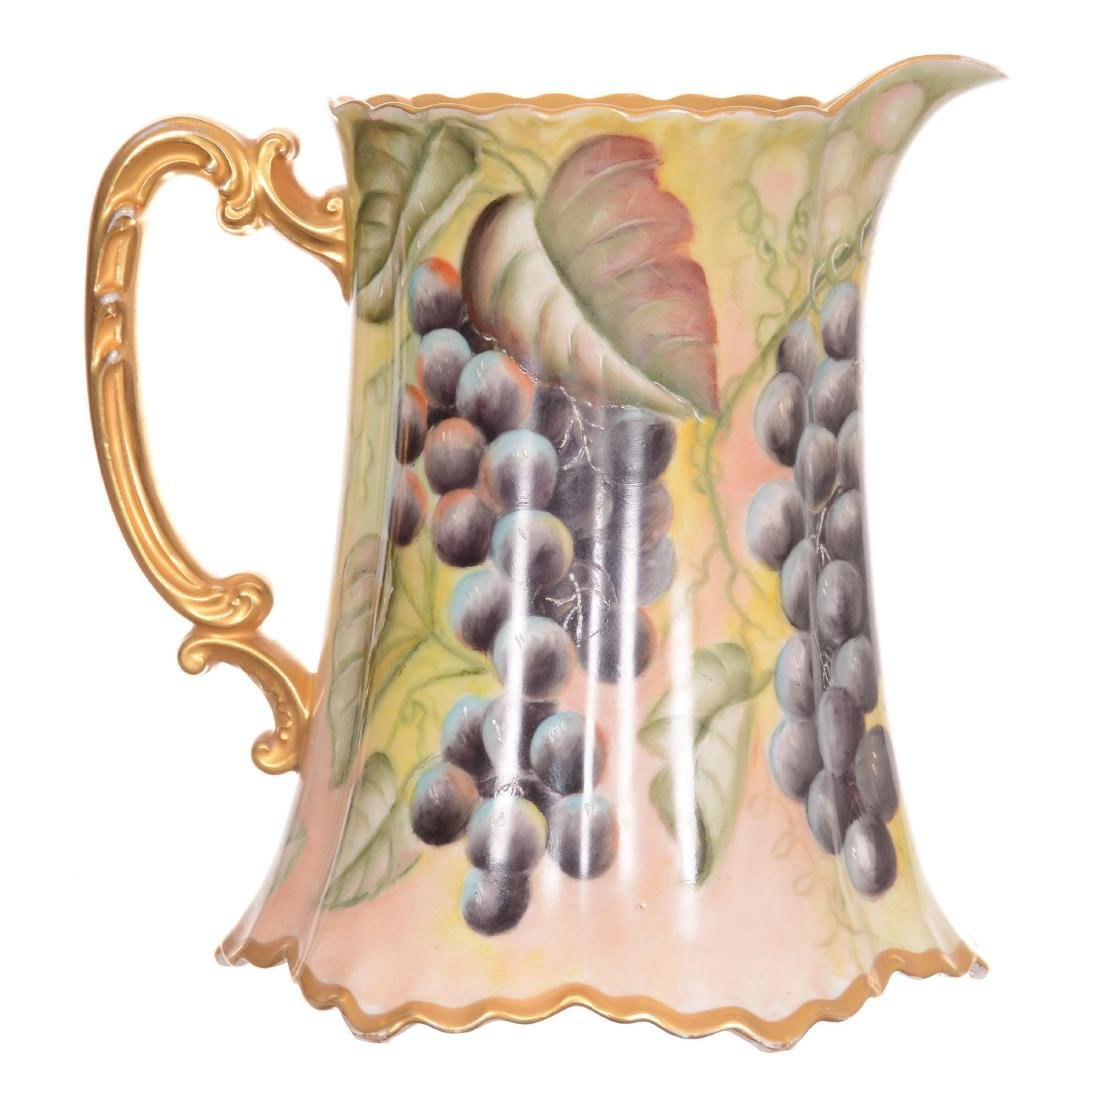 Marked Haviland Pitcher